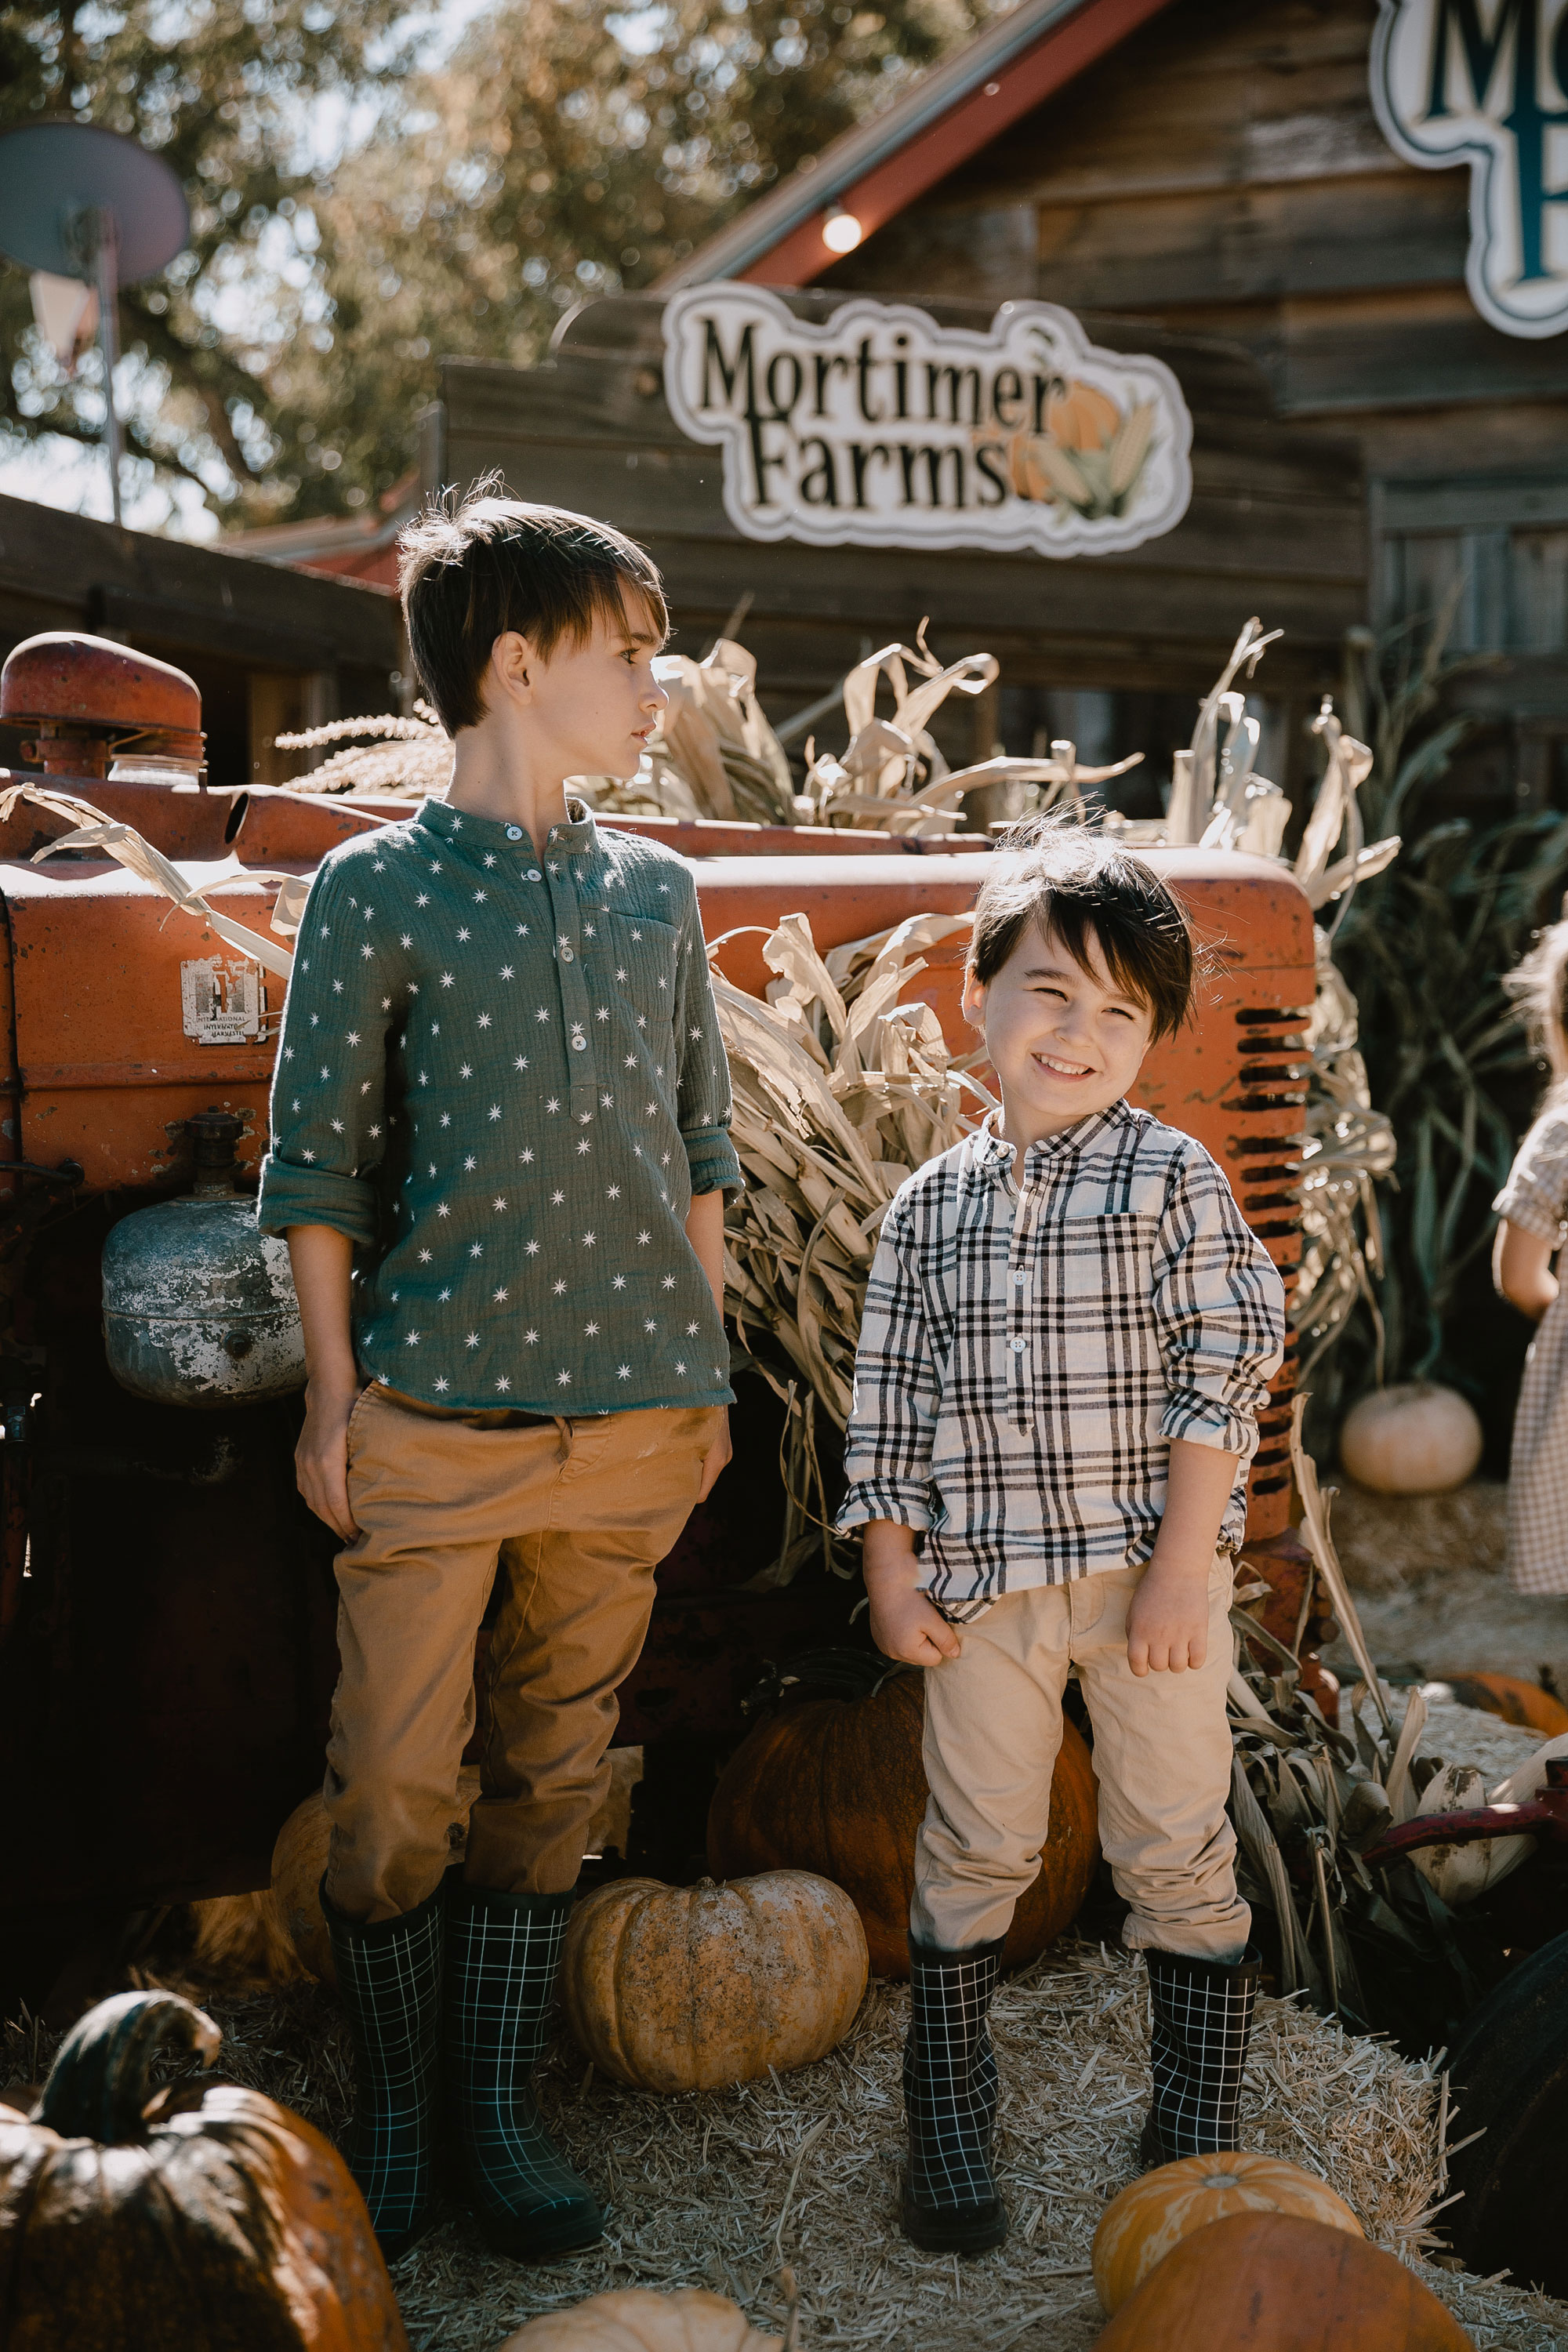 my handsome boy! dressed cute and comfortable for the pumpkin patch. #ryleeandcre #bohemianmama #boma #fallfun